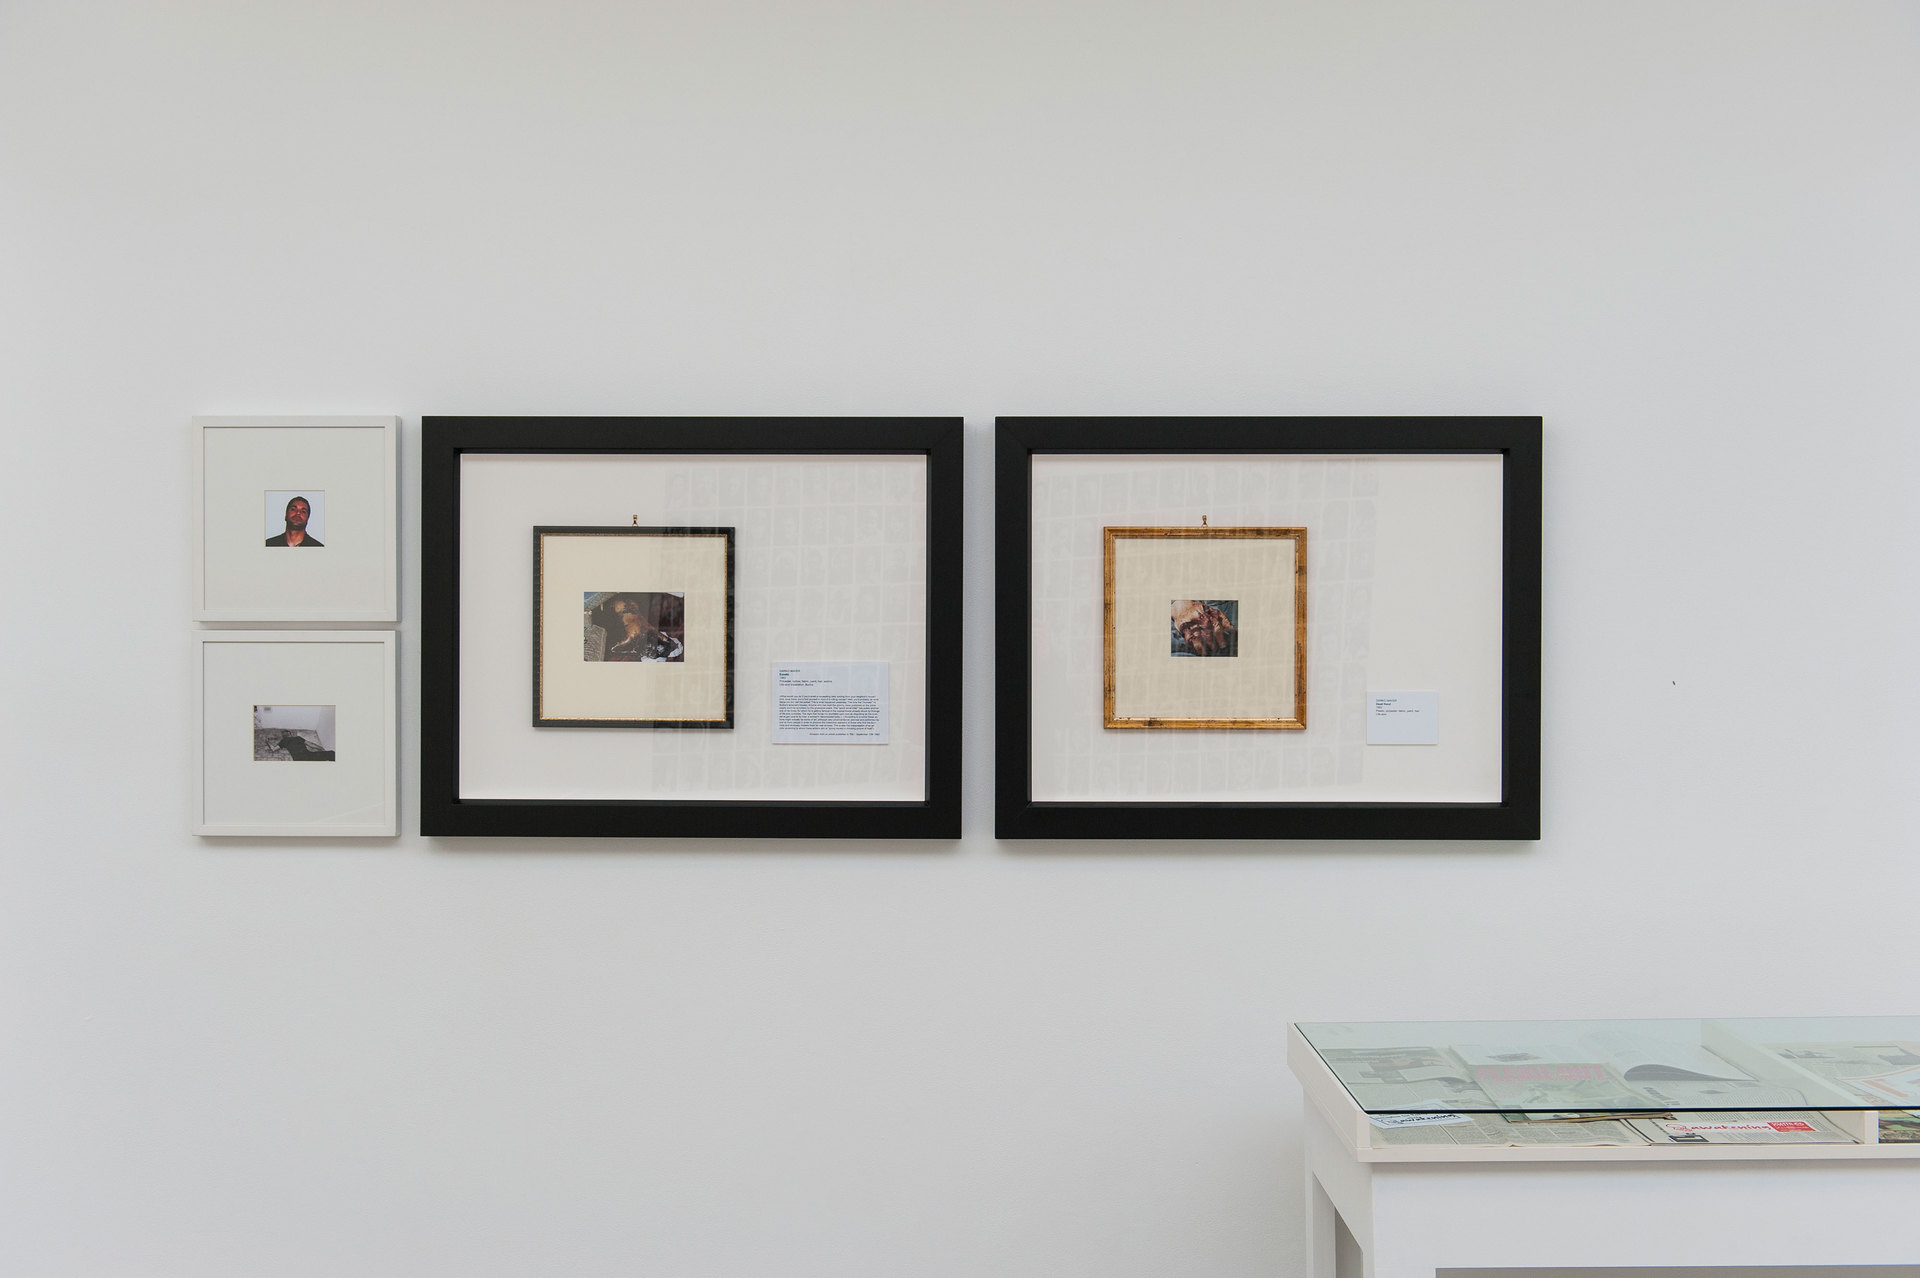 Eva and Franco Mattes, Darko Maver, (1988–99), Part of a larger work, framed archive of digital print on paper, (2x) 94 x 73 cm, (2x) 35.5 x 35.5 cm, Cell Project Space